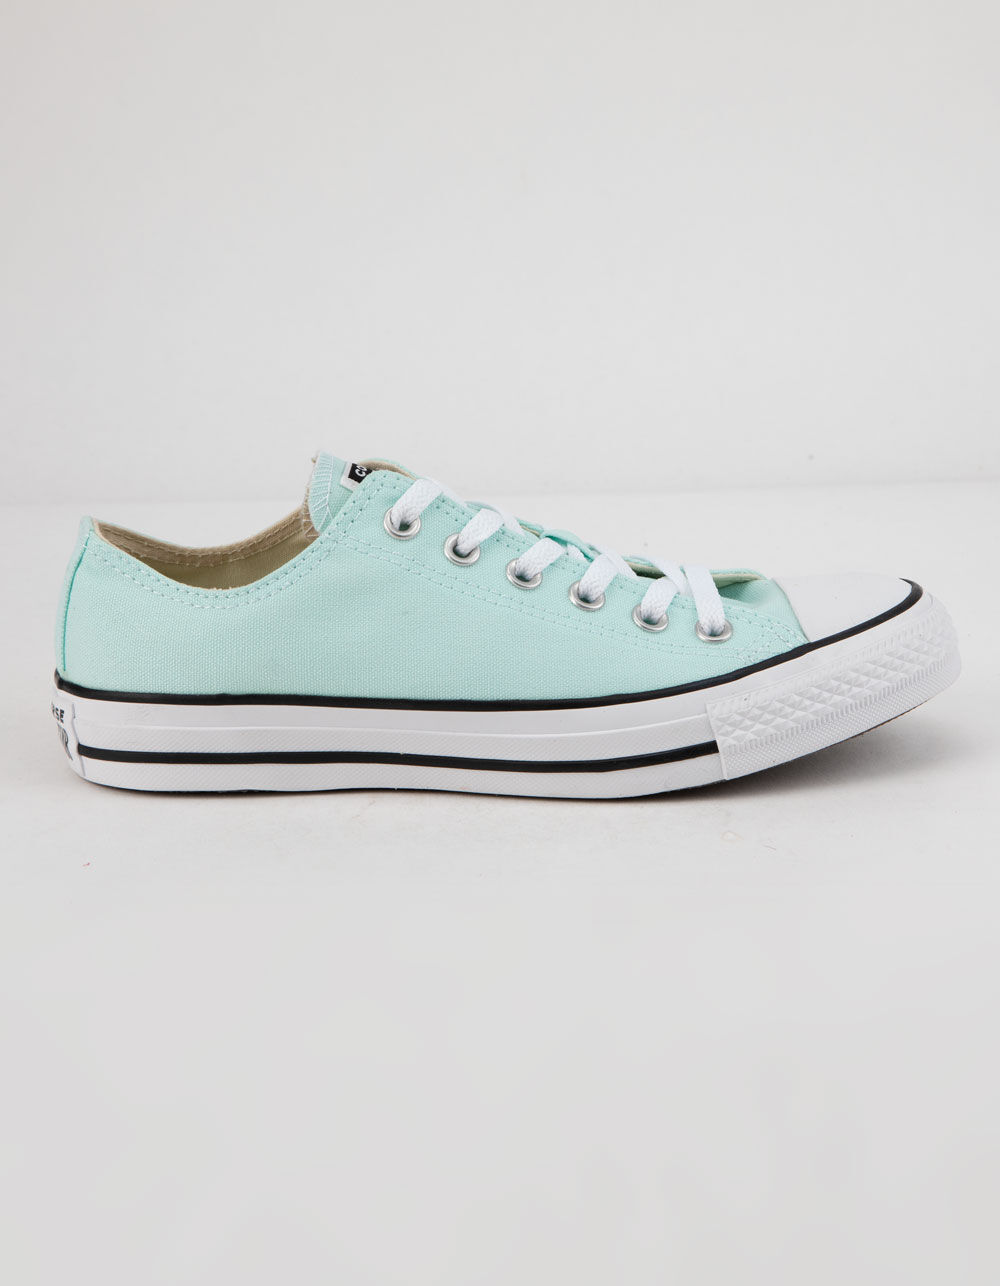 Image of CONVERSE CHUCK TAYLOR ALL STAR SEASONAL COLOR TEAL TINT LOW TOP SHOES